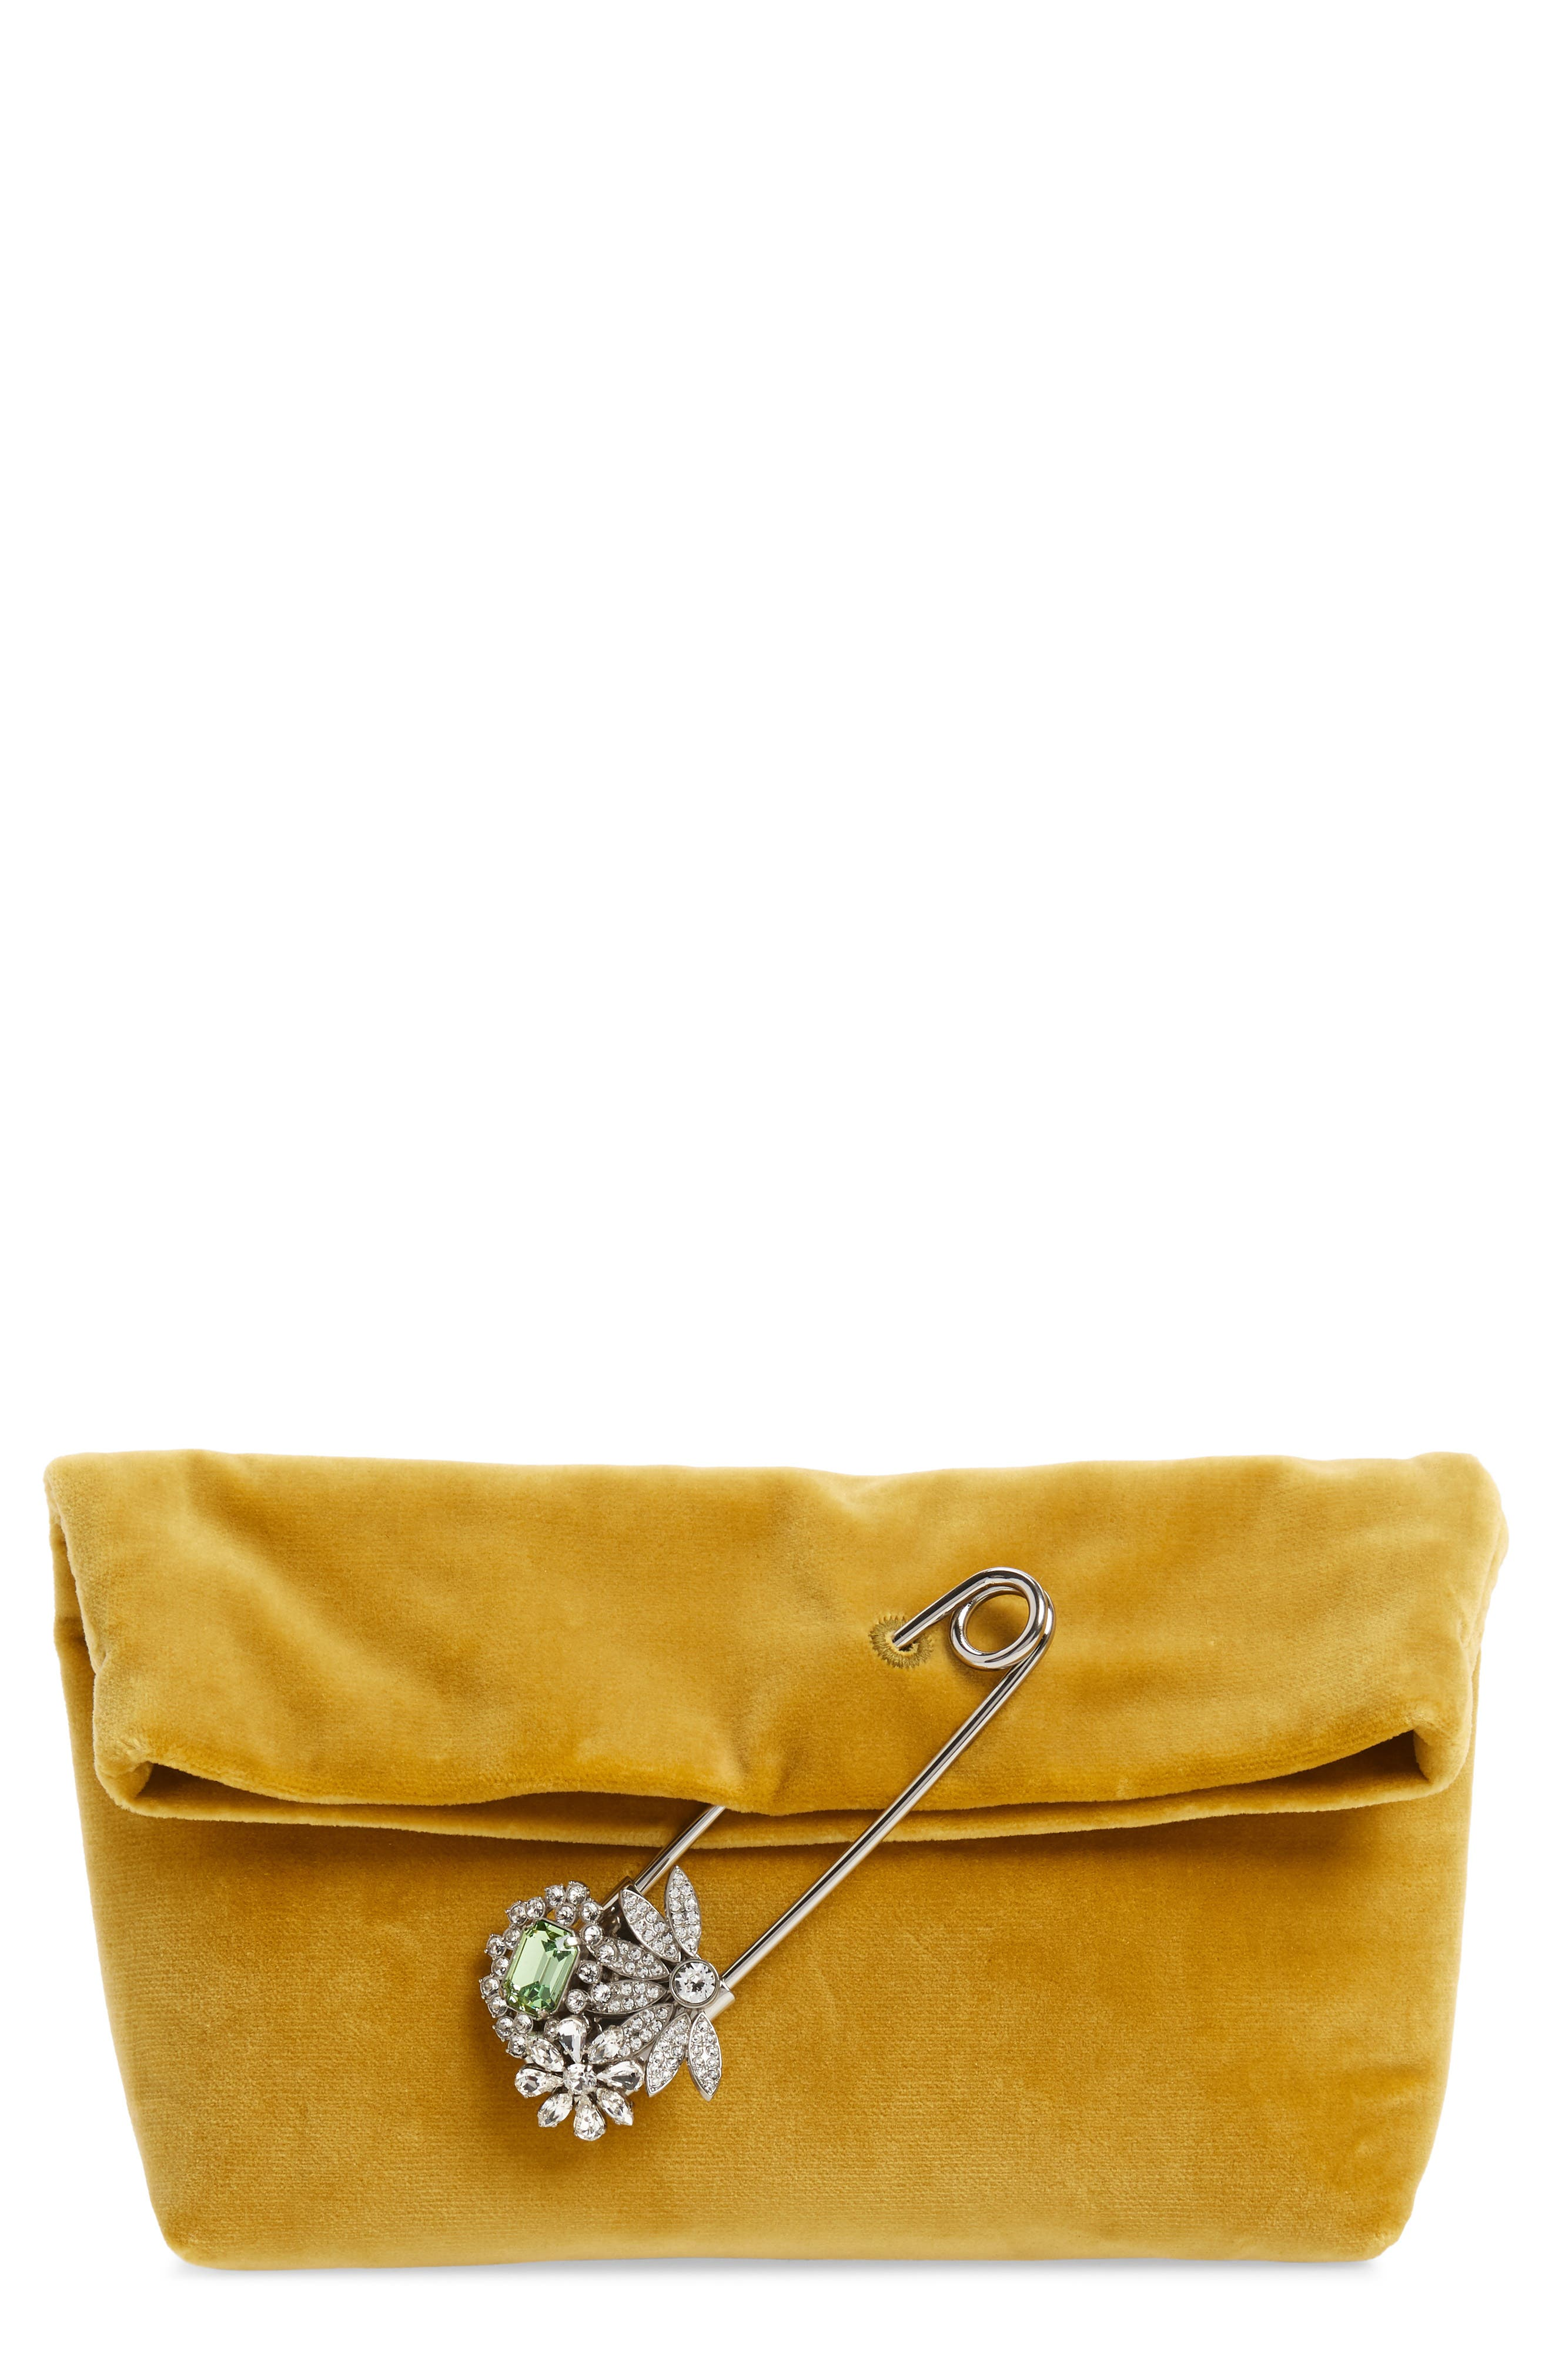 Small Safety Pin Clutch, Main, color, LARCH YELLOW